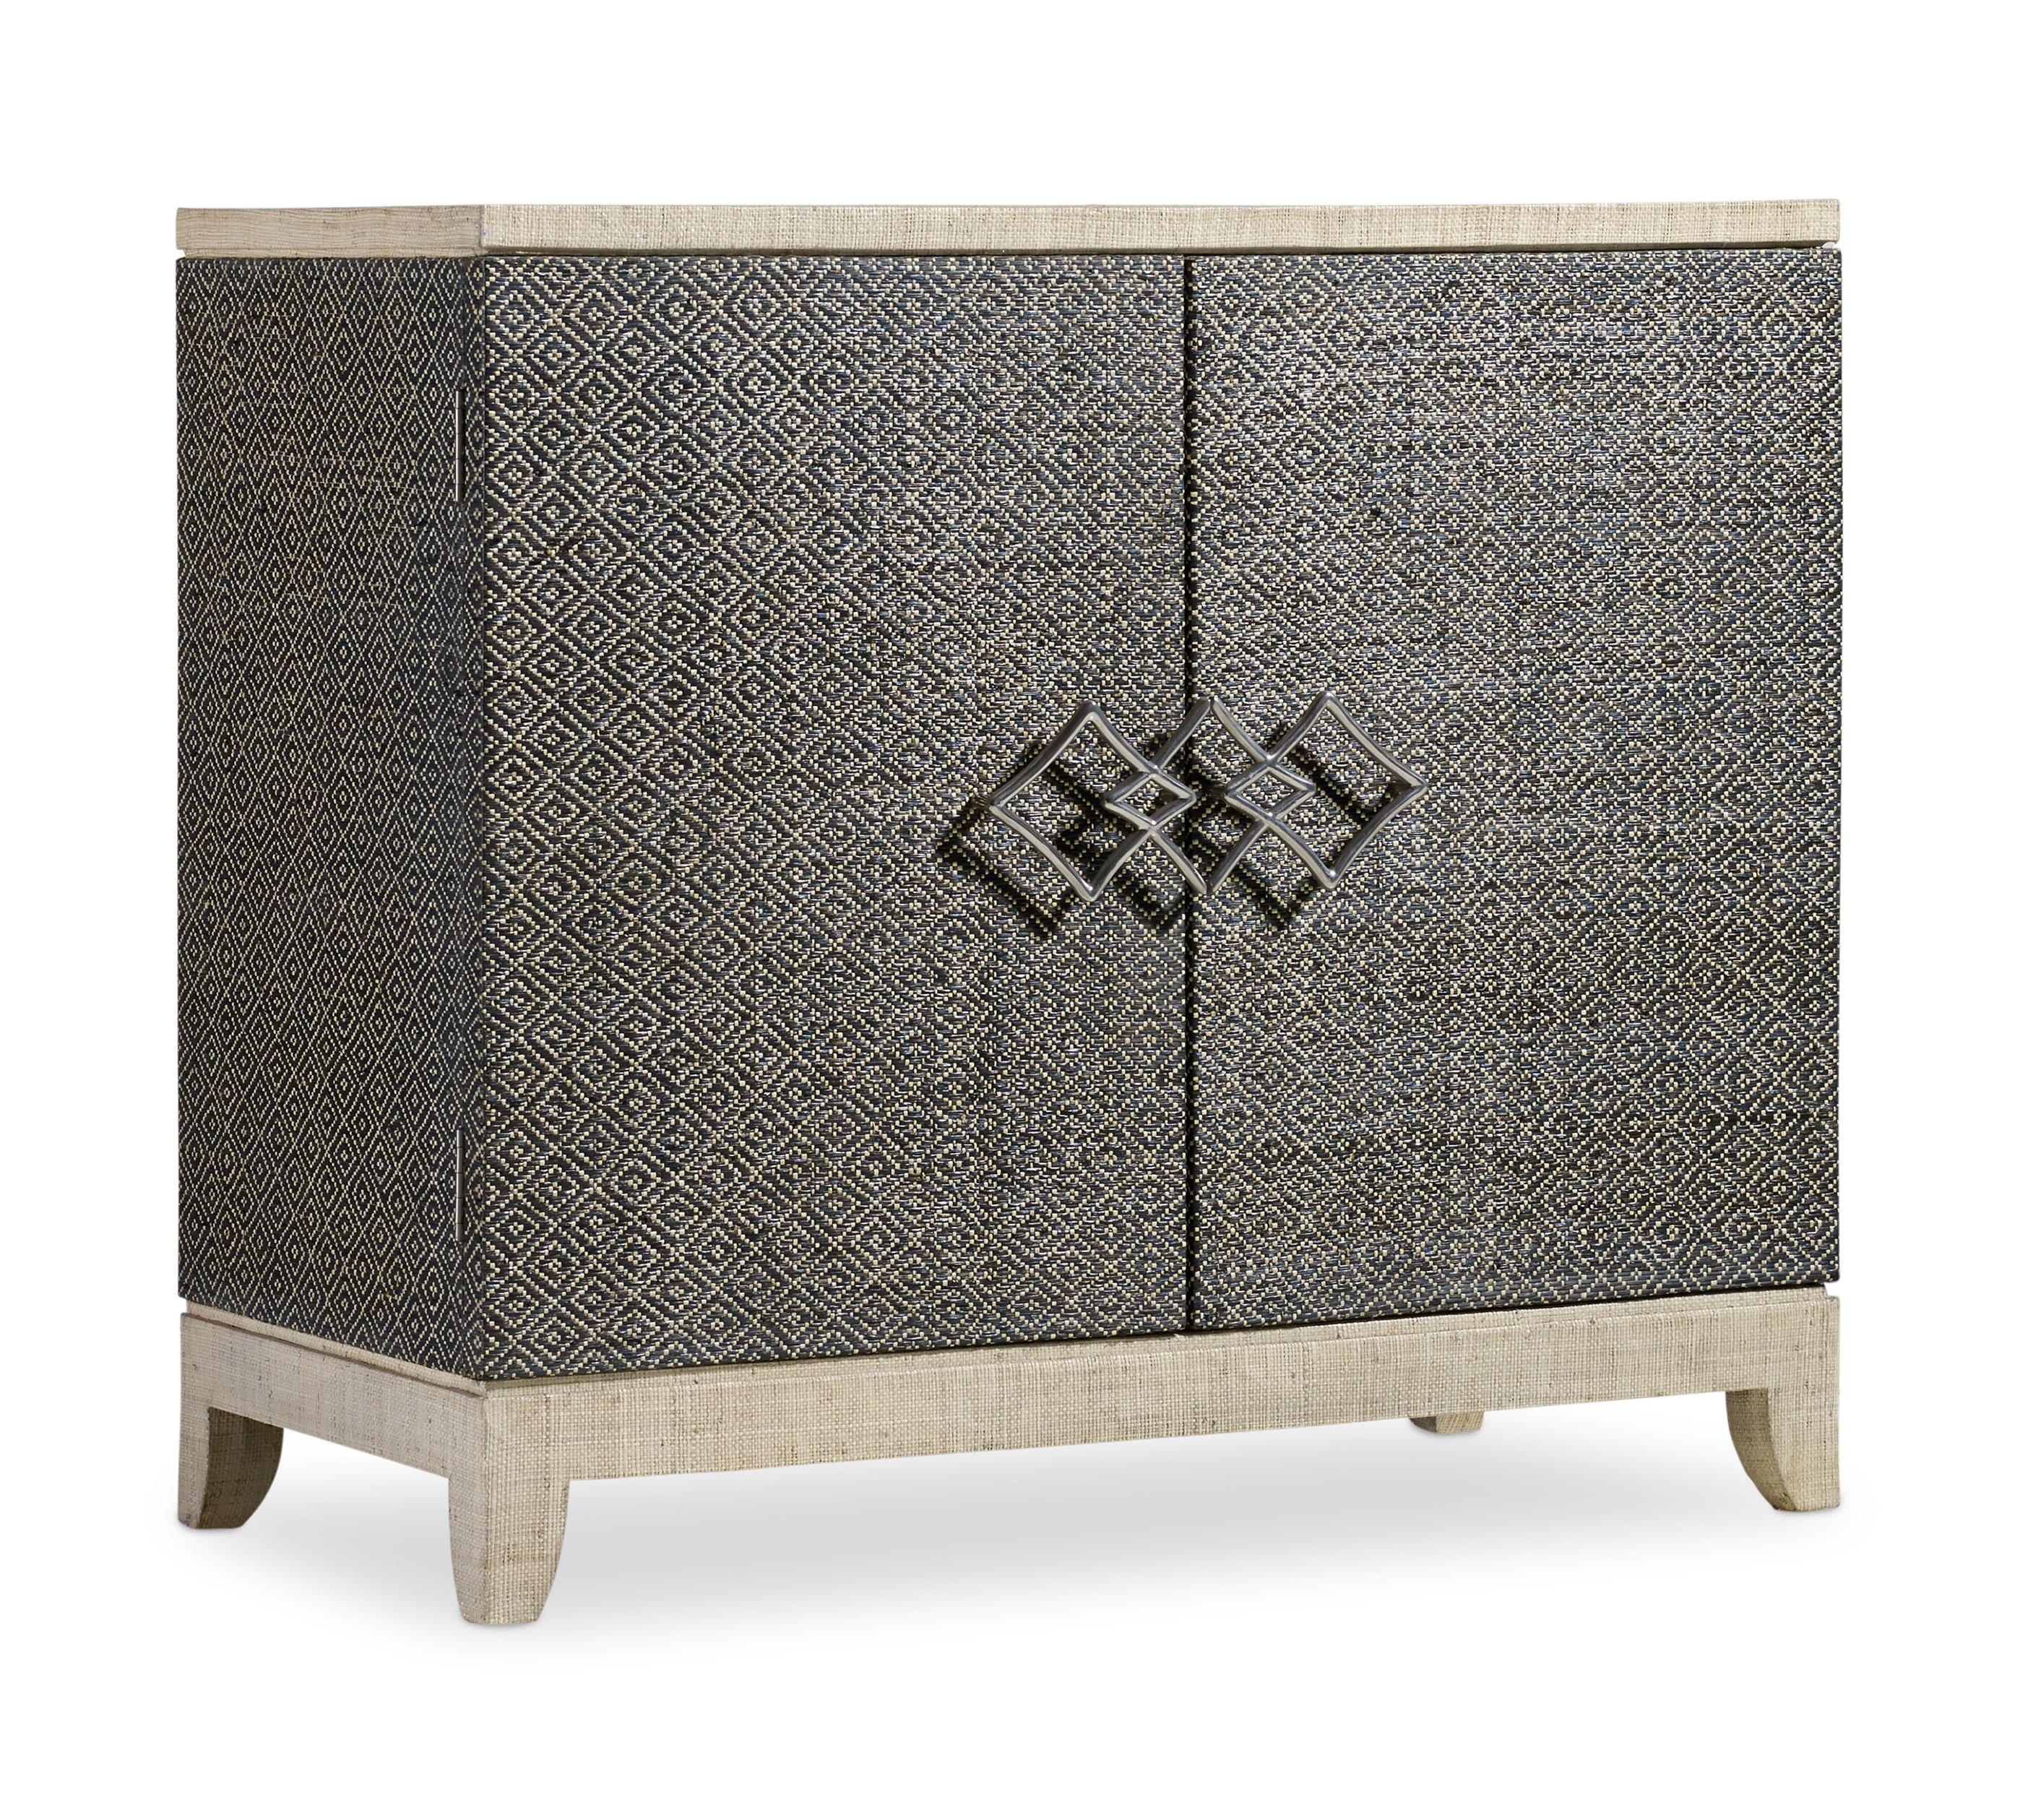 Hooker Furniture Mélange Ziva Console - Item Number: 638-85152